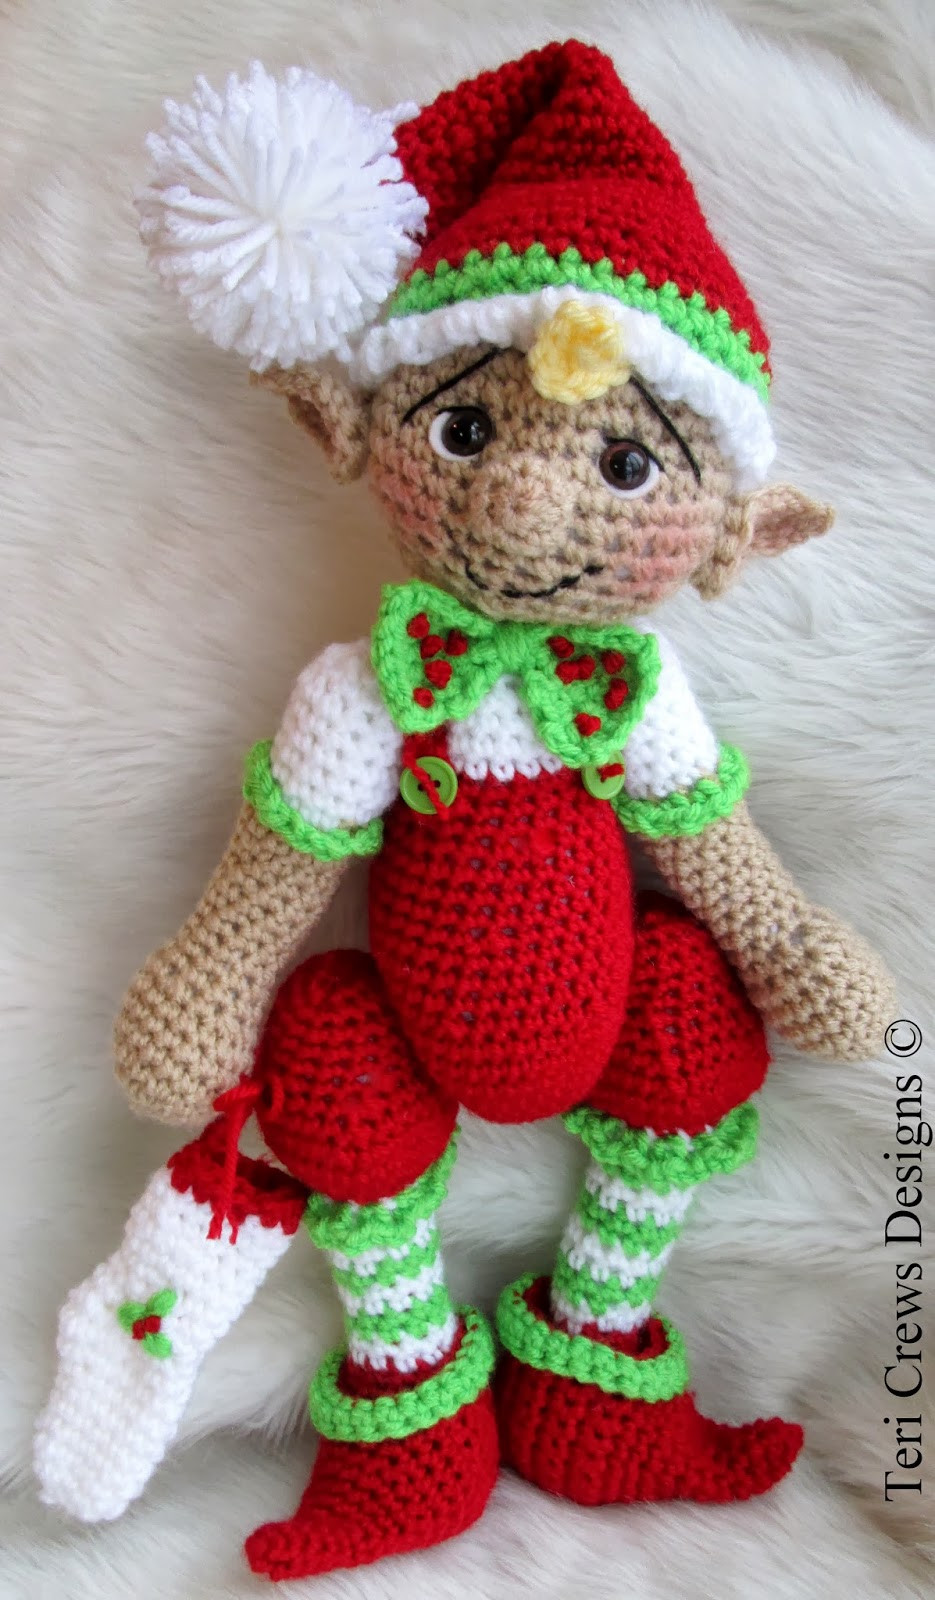 New Crochet Patterns Best Of Teri S Blog New Simply Cute Elf Crochet Pattern Of Perfect 50 Ideas New Crochet Patterns